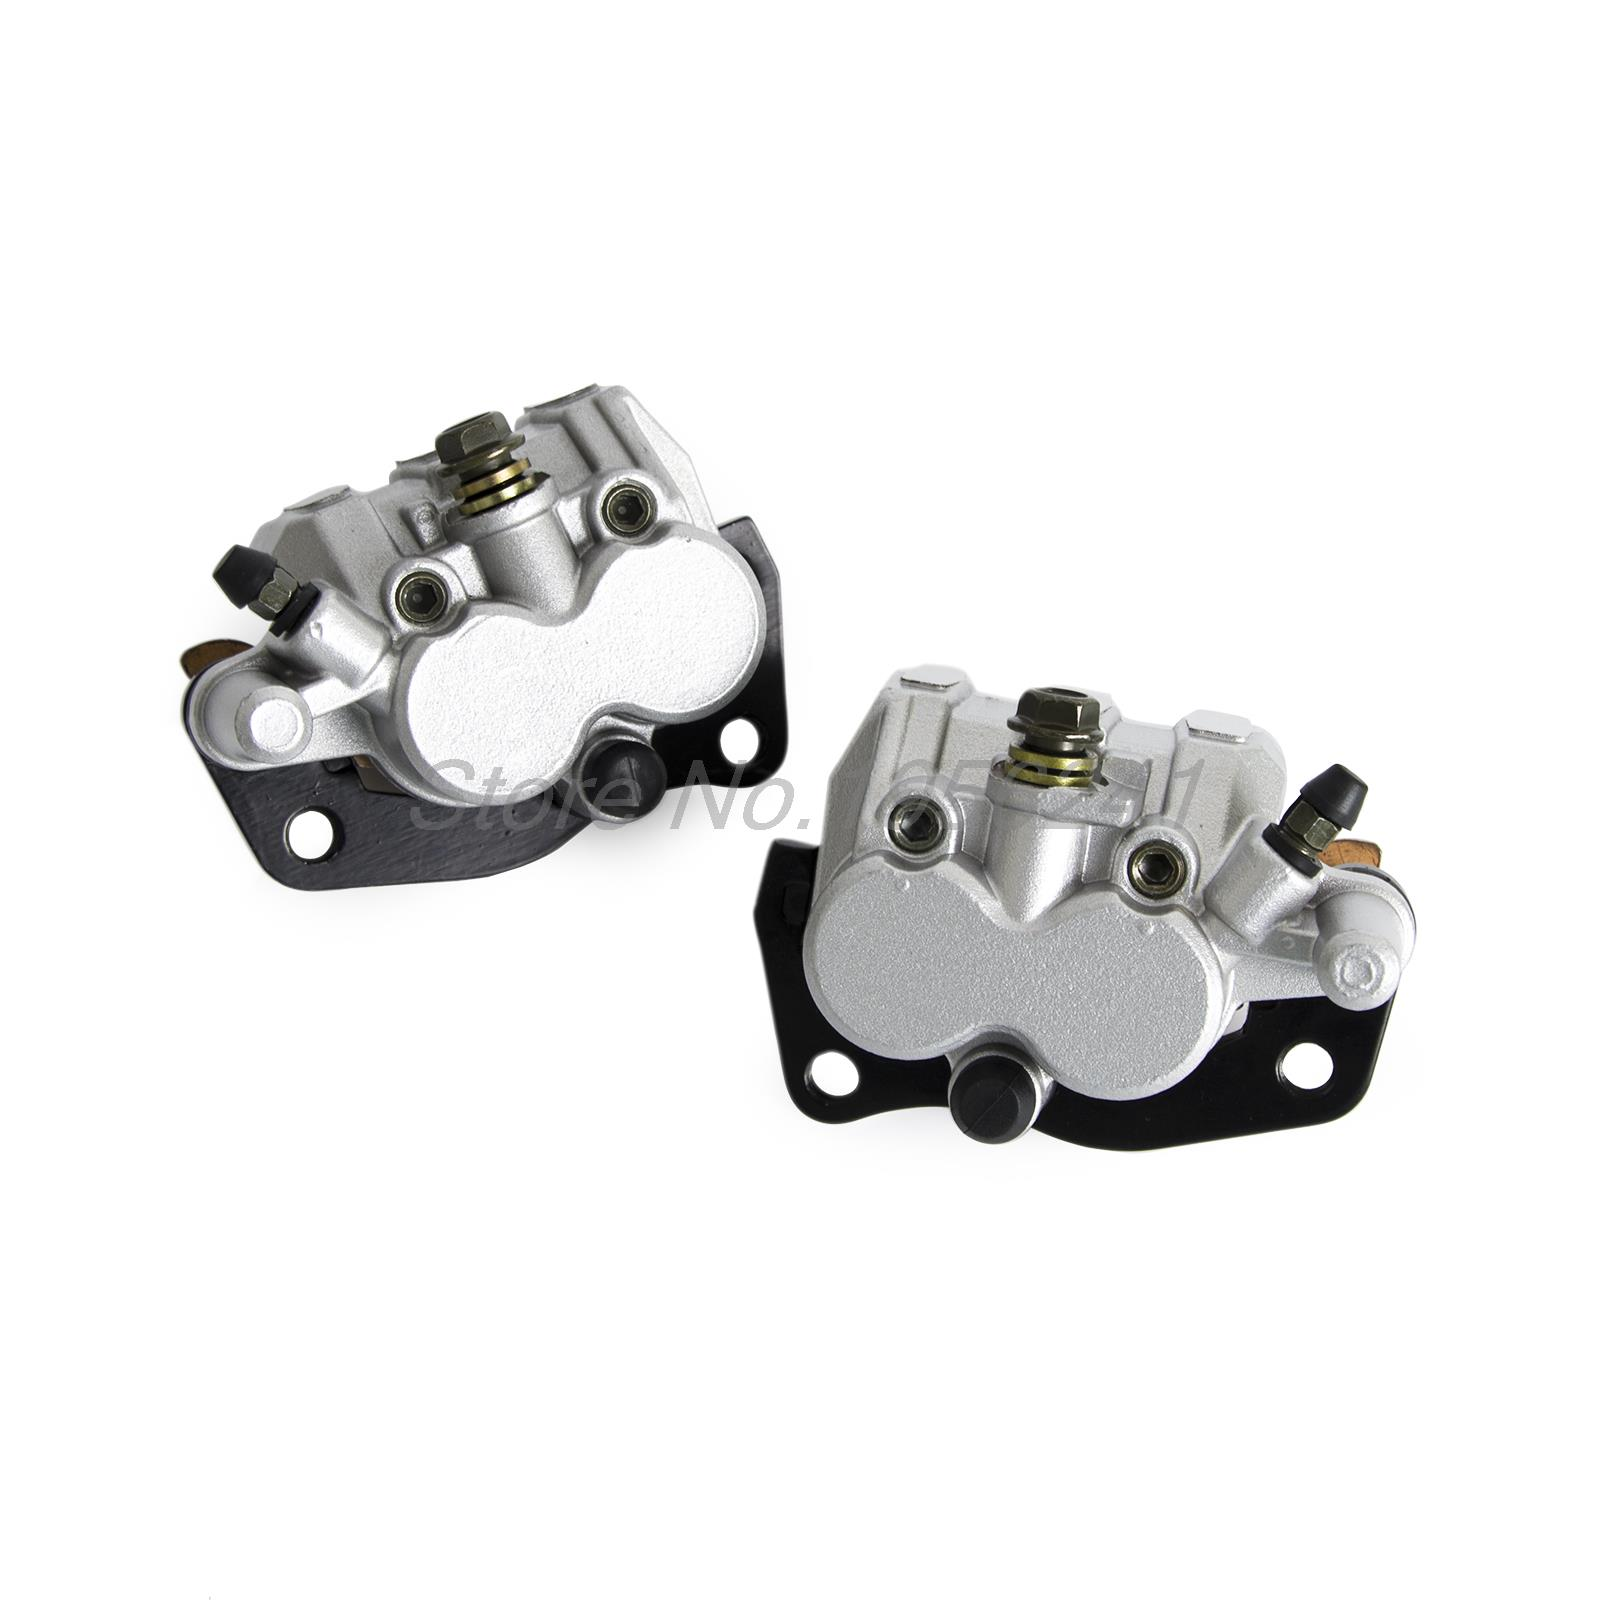 Front Right & Left Brake Caliper With Pads For Suzuki Burgman AN400 2007 2008 2009 2010 2011 new right front brake caliper for yamaha warrior 350 1989 2002 2003 04 with pads